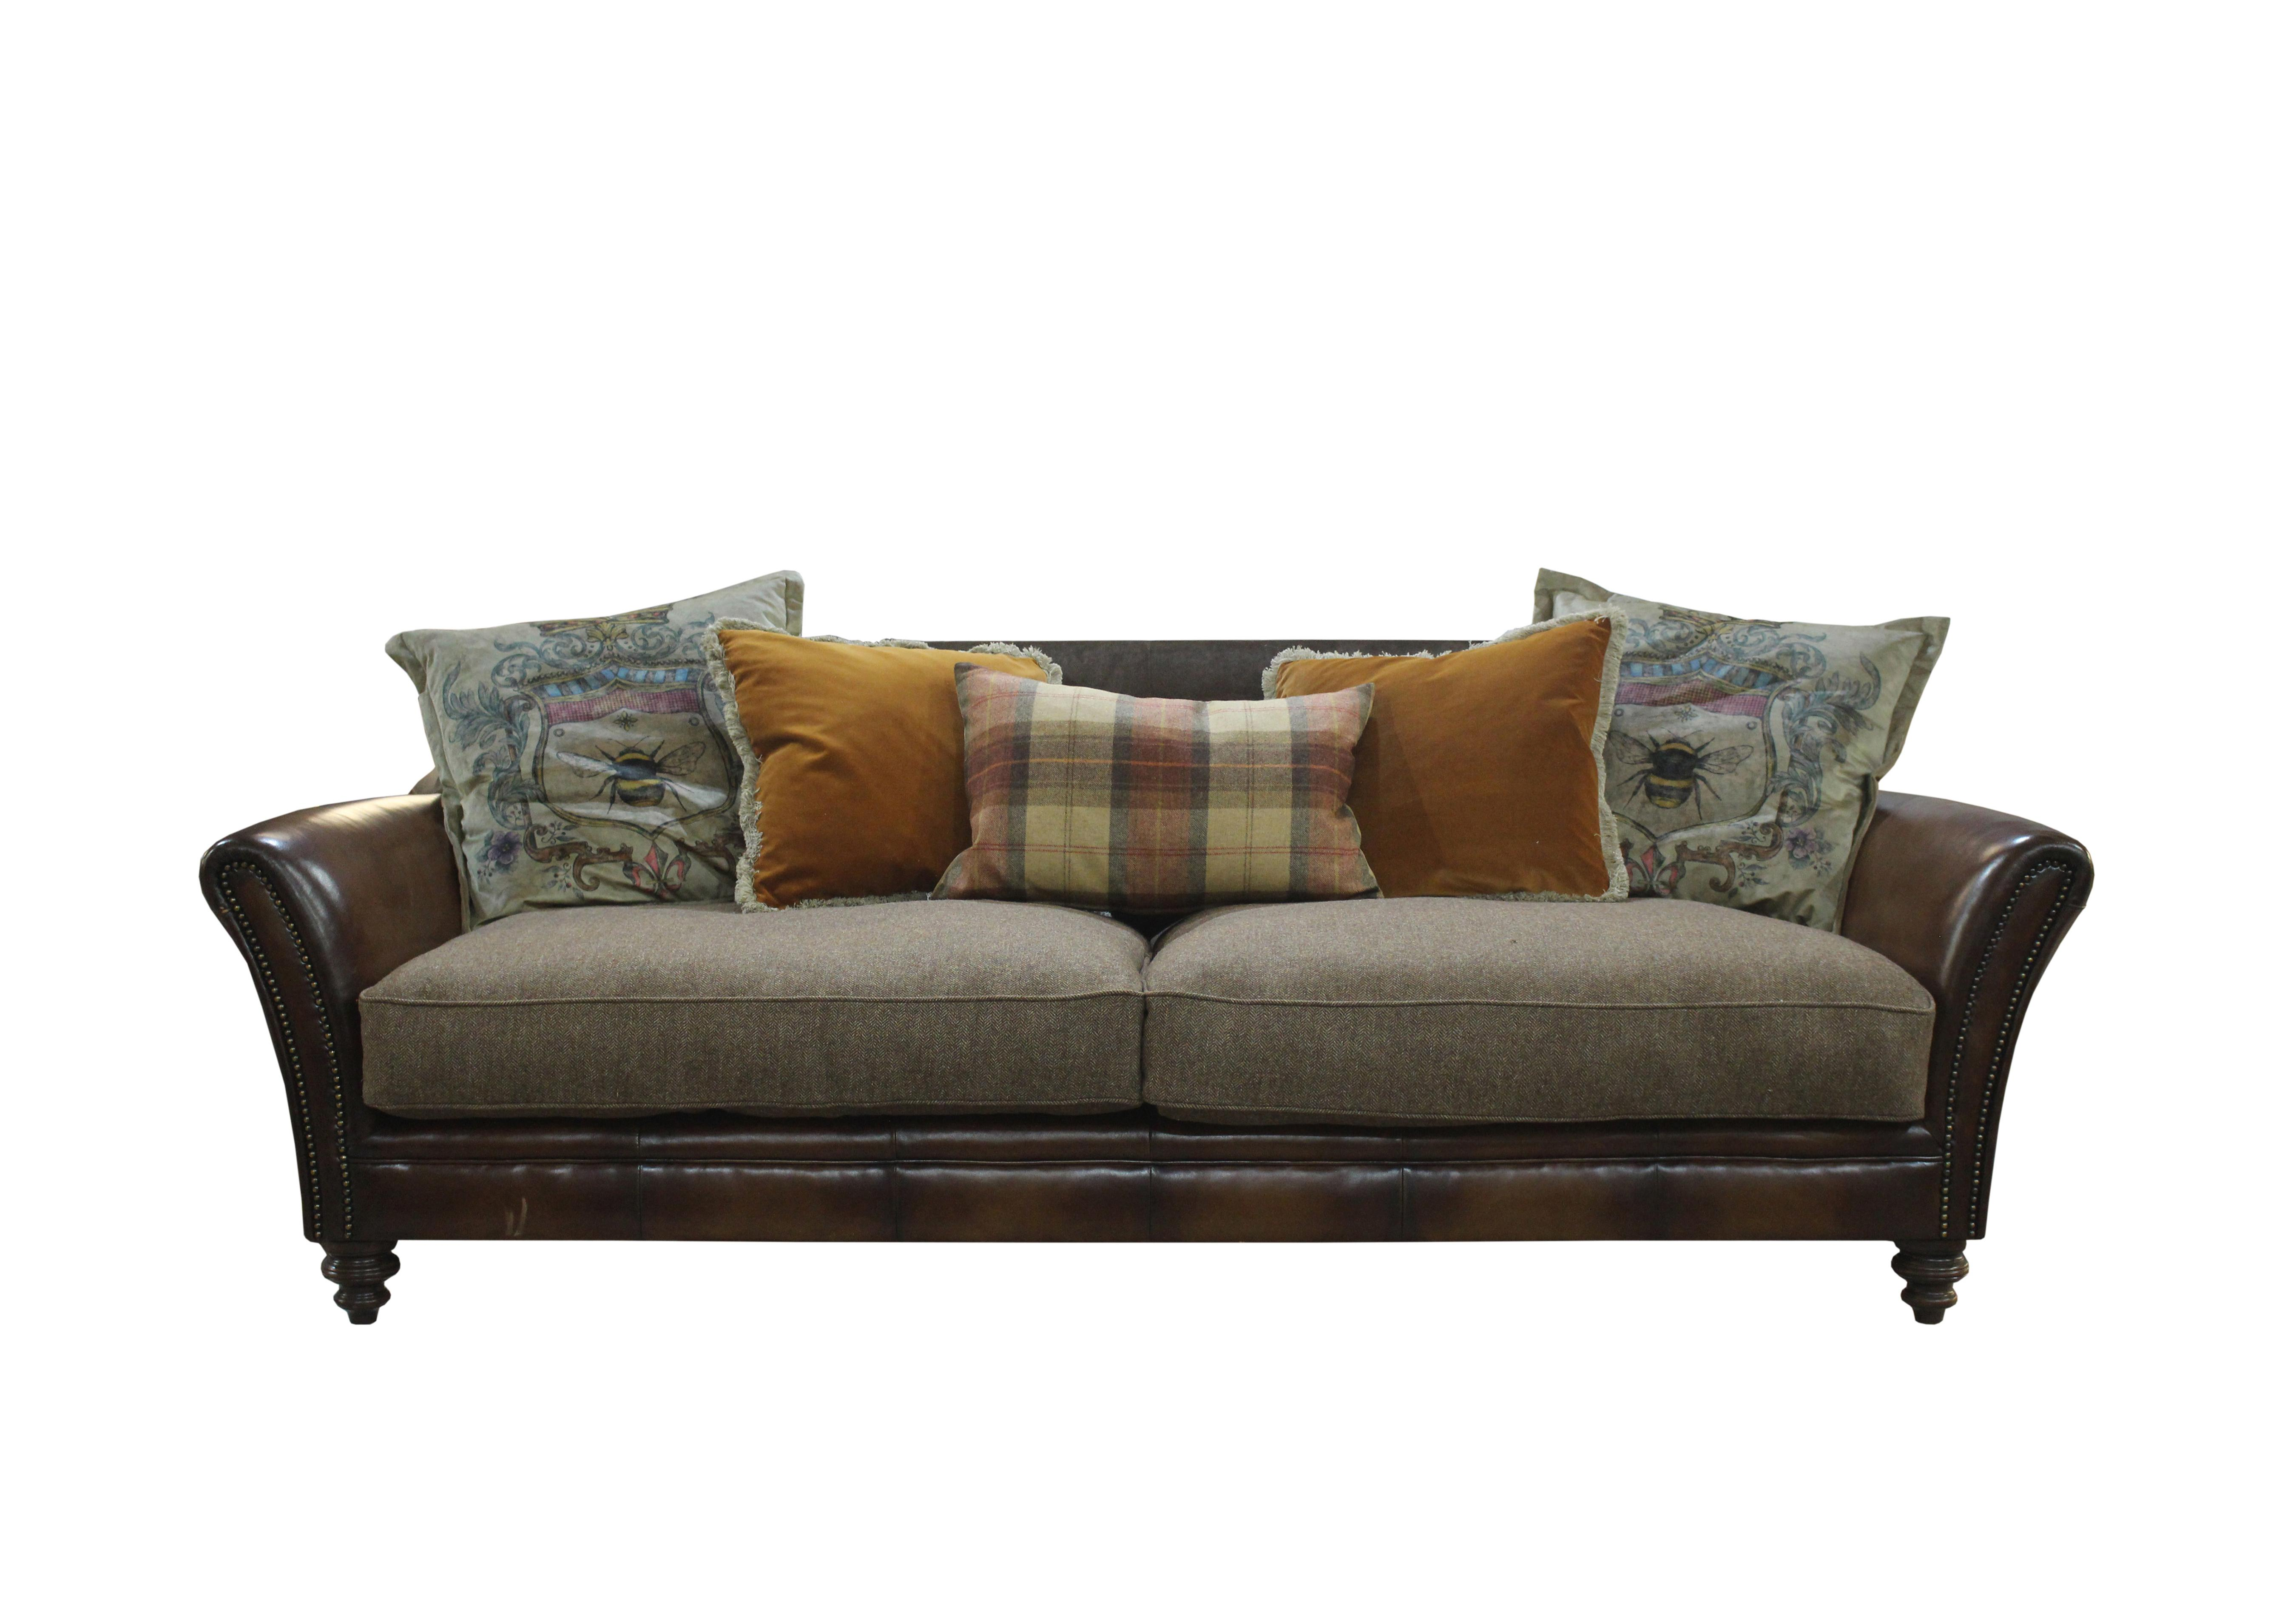 duck feather corner sofa design ideas with red tetrad furniture full collection village save 500